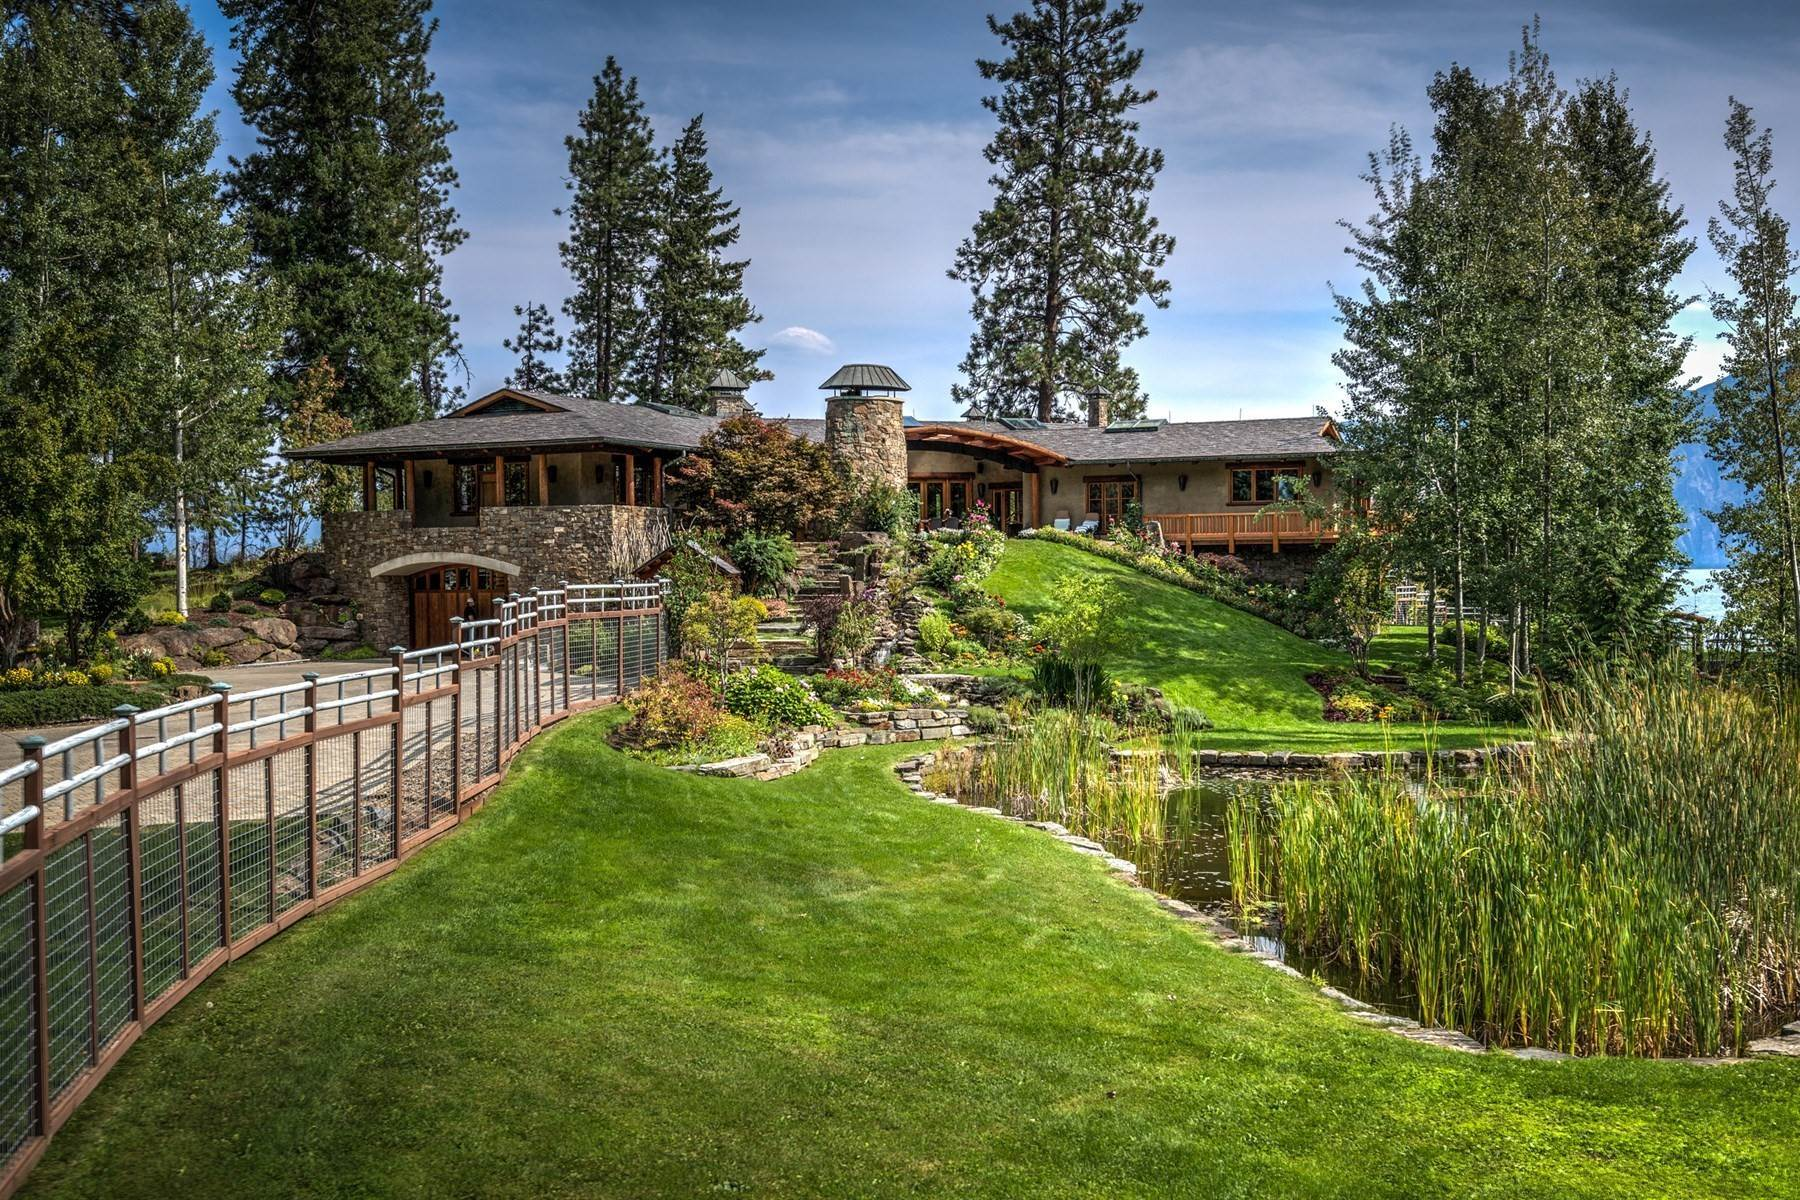 Single Family Homes for Sale at Loch Haven Estate 552 Loch Haven, Sagle, Idaho, 83860 United States